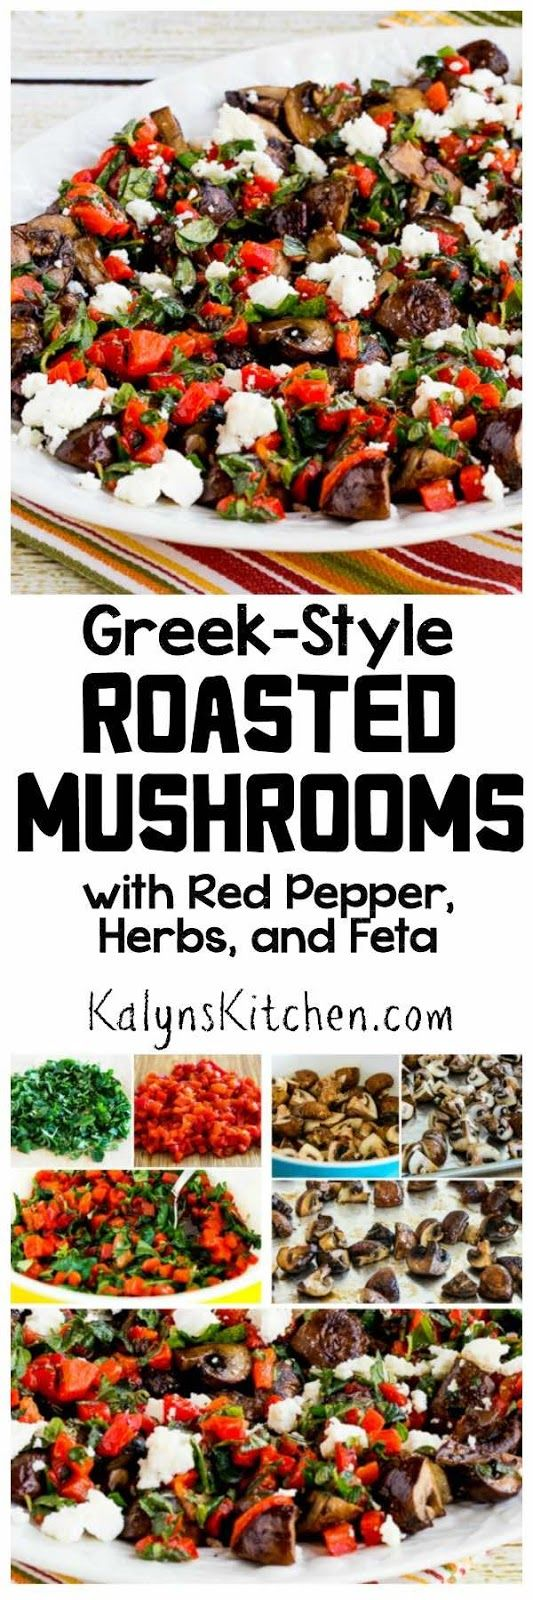 1000+ images about [Best Vegetarian and Vegan Recipes] on Pinterest ...